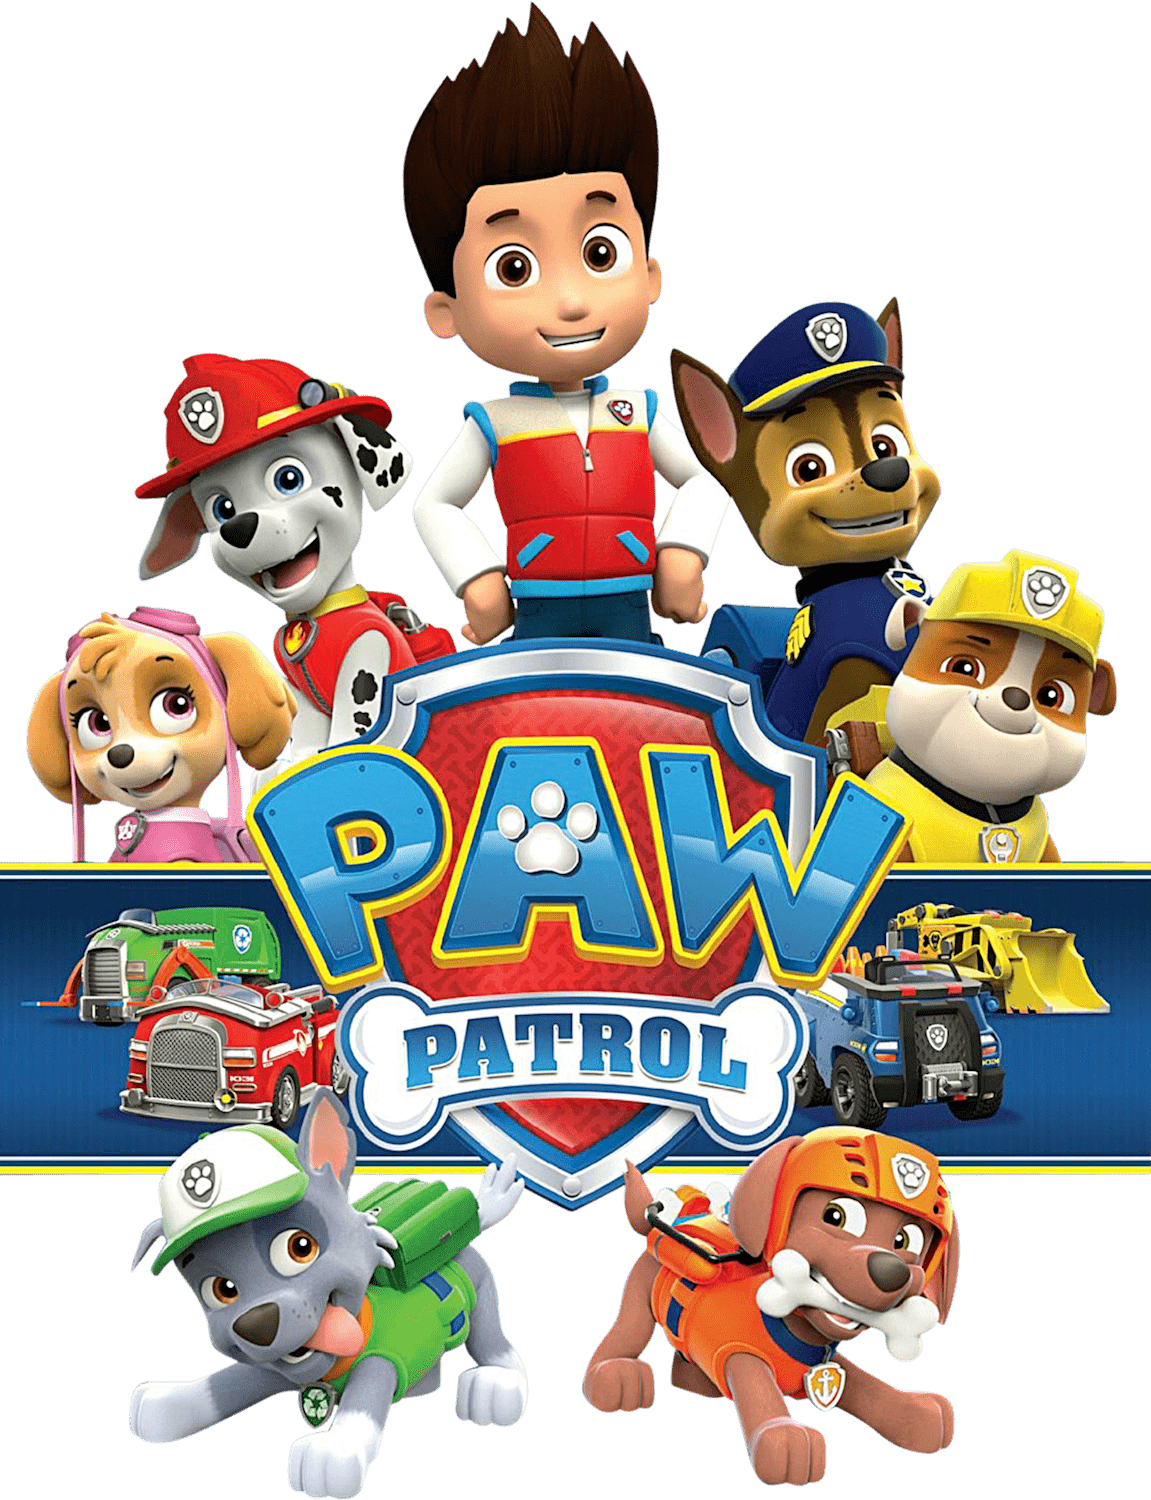 Paw patrol clipart images svg black and white library Pawpatrol With Logo Png Transparent Paw Patrol Clipart Png svg black and white library